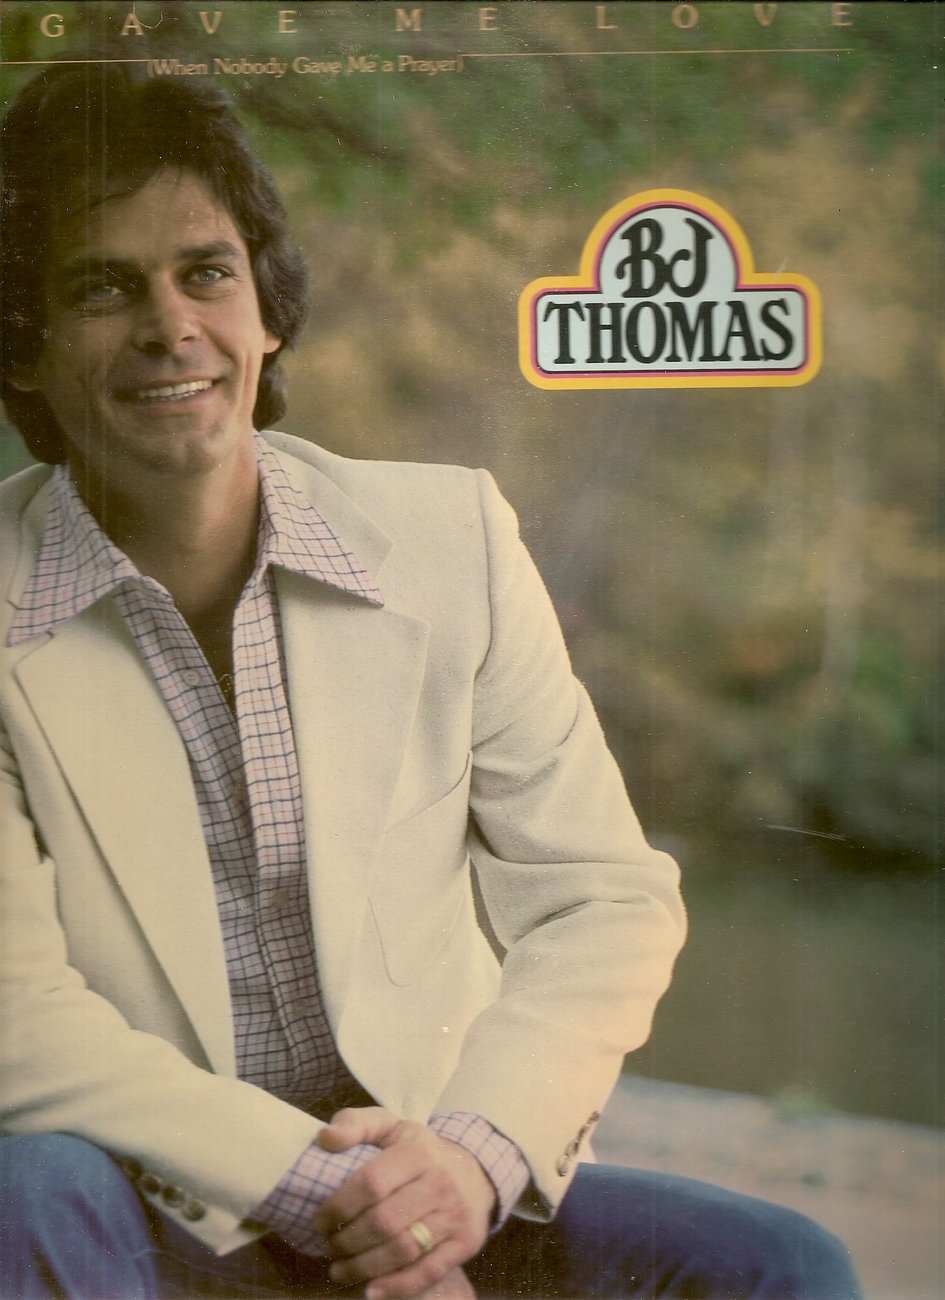 Primary image for LP--B.J. Thomas ‎– You Gave Me Love (When Nobody Gave Me A Prayer)